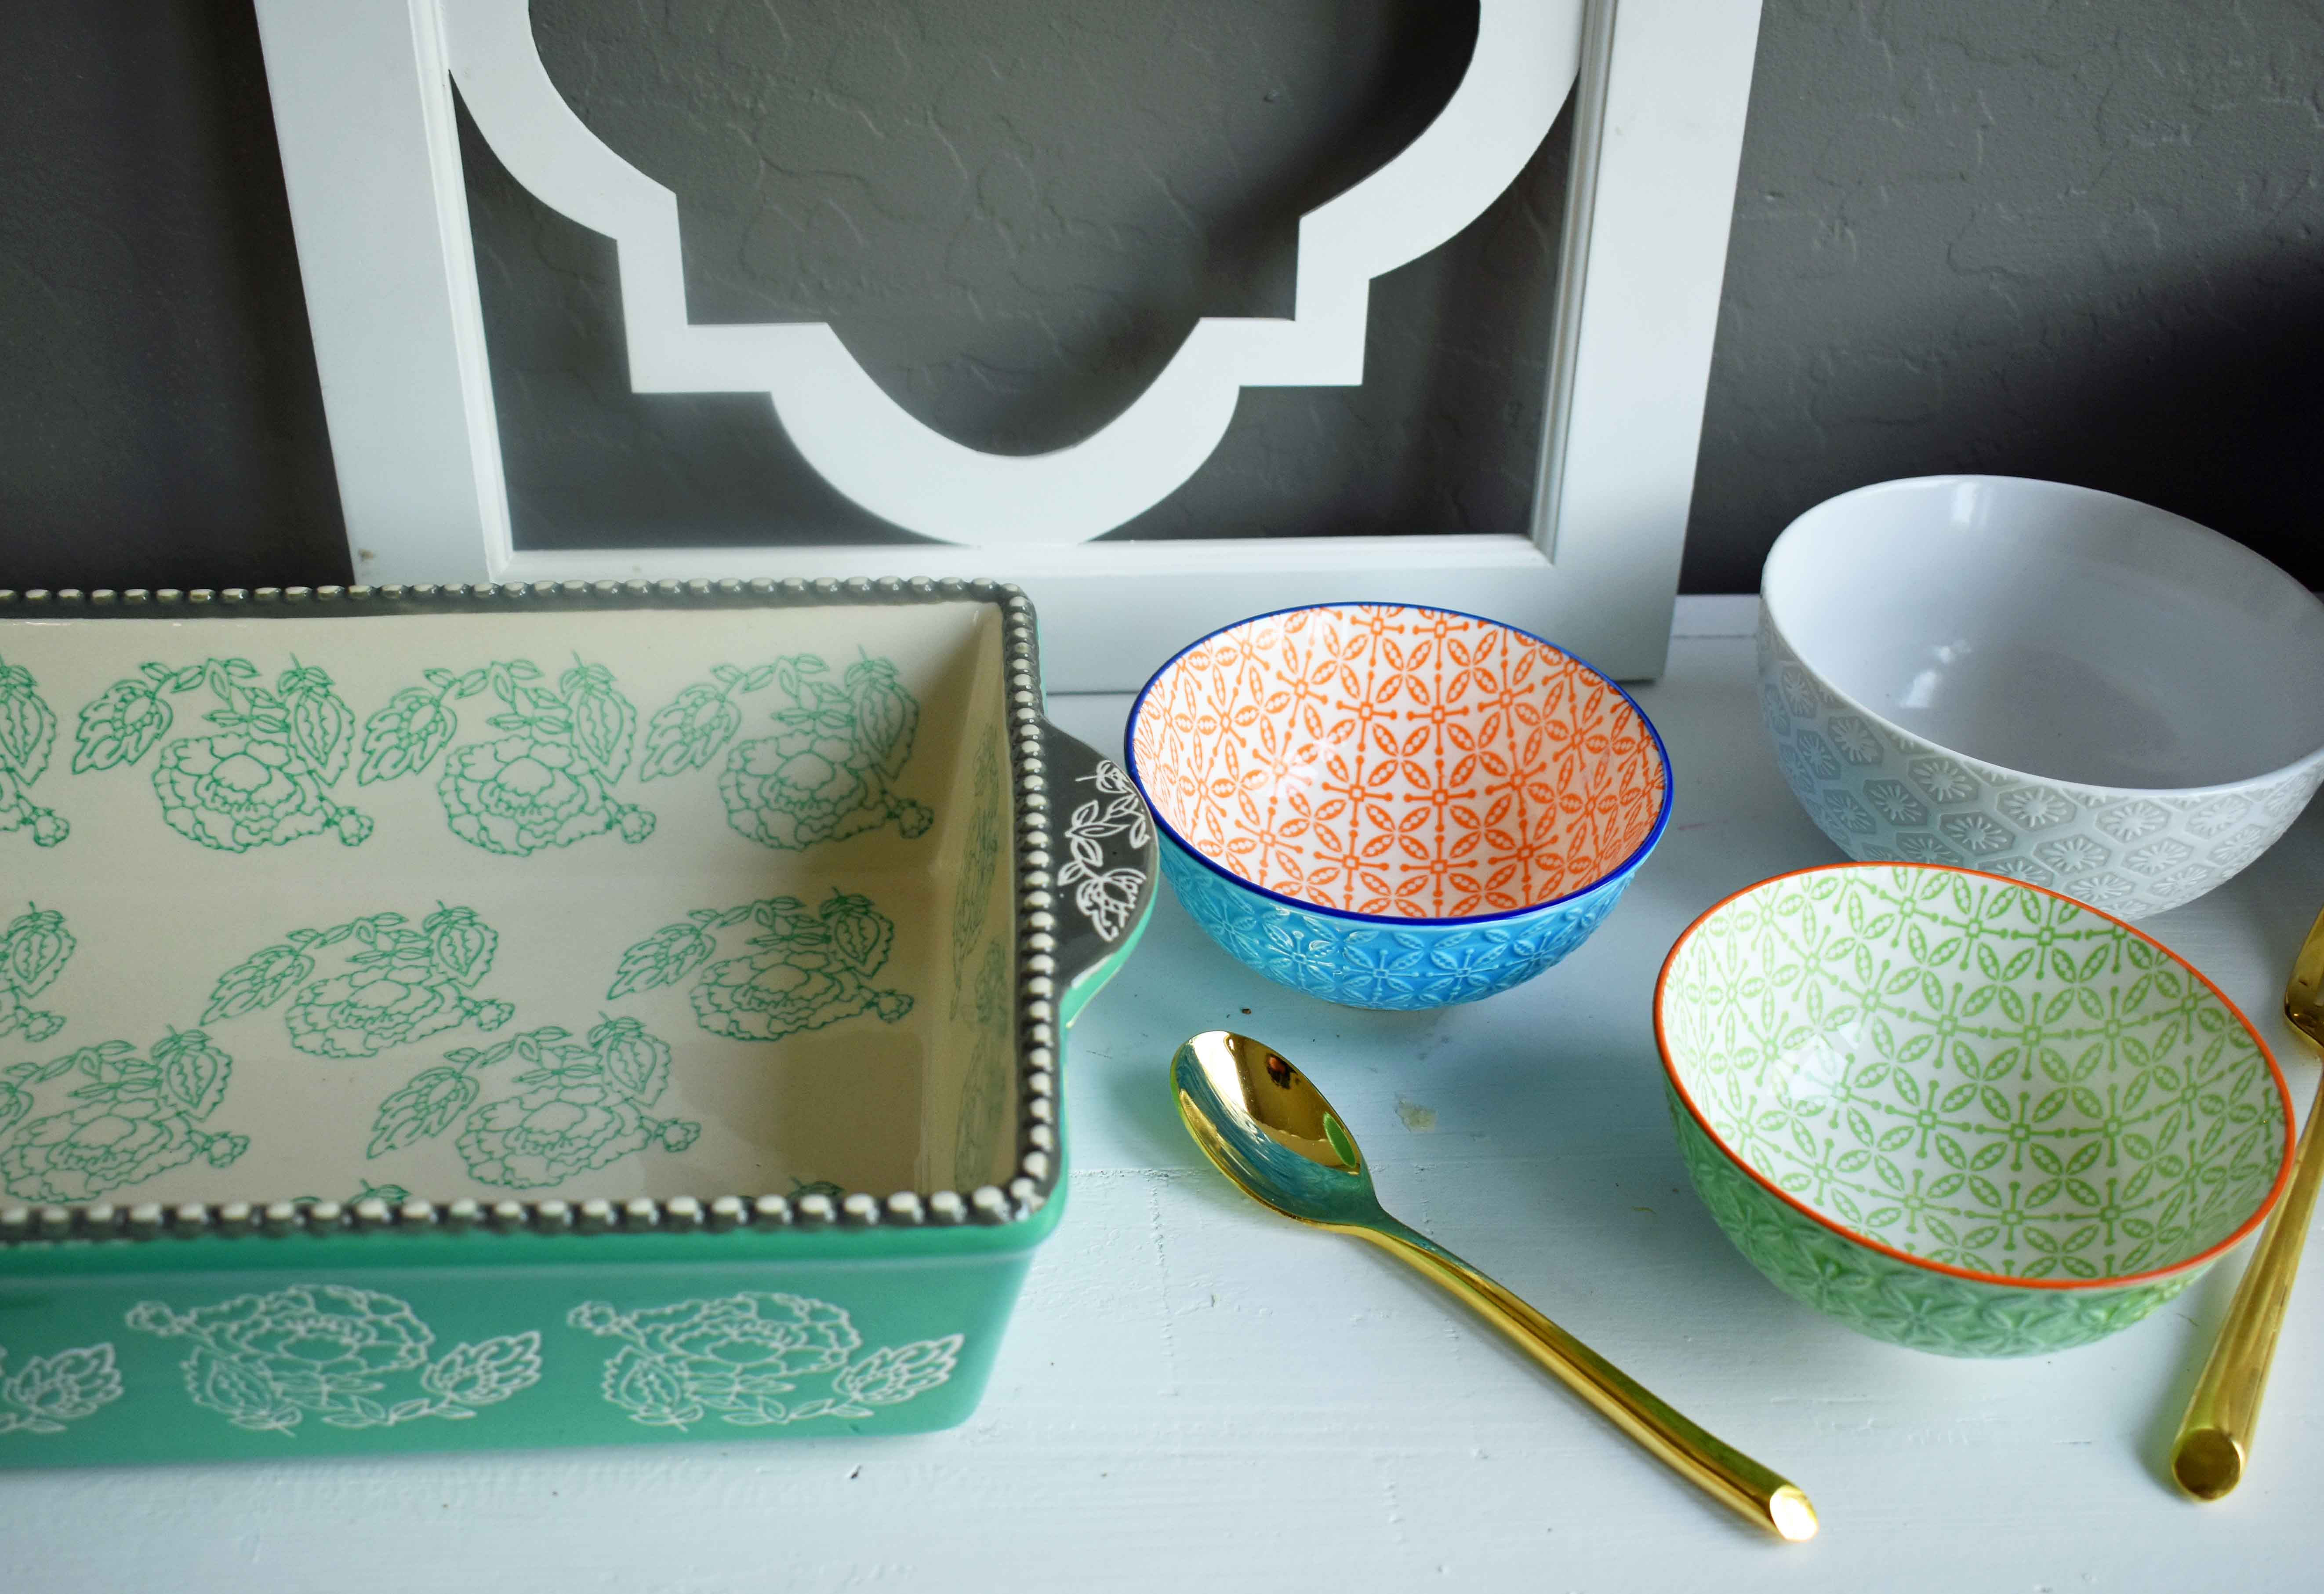 Spring Decoration Ideas. Bright and beautiful dishes from World Market to brighten your kitchen.